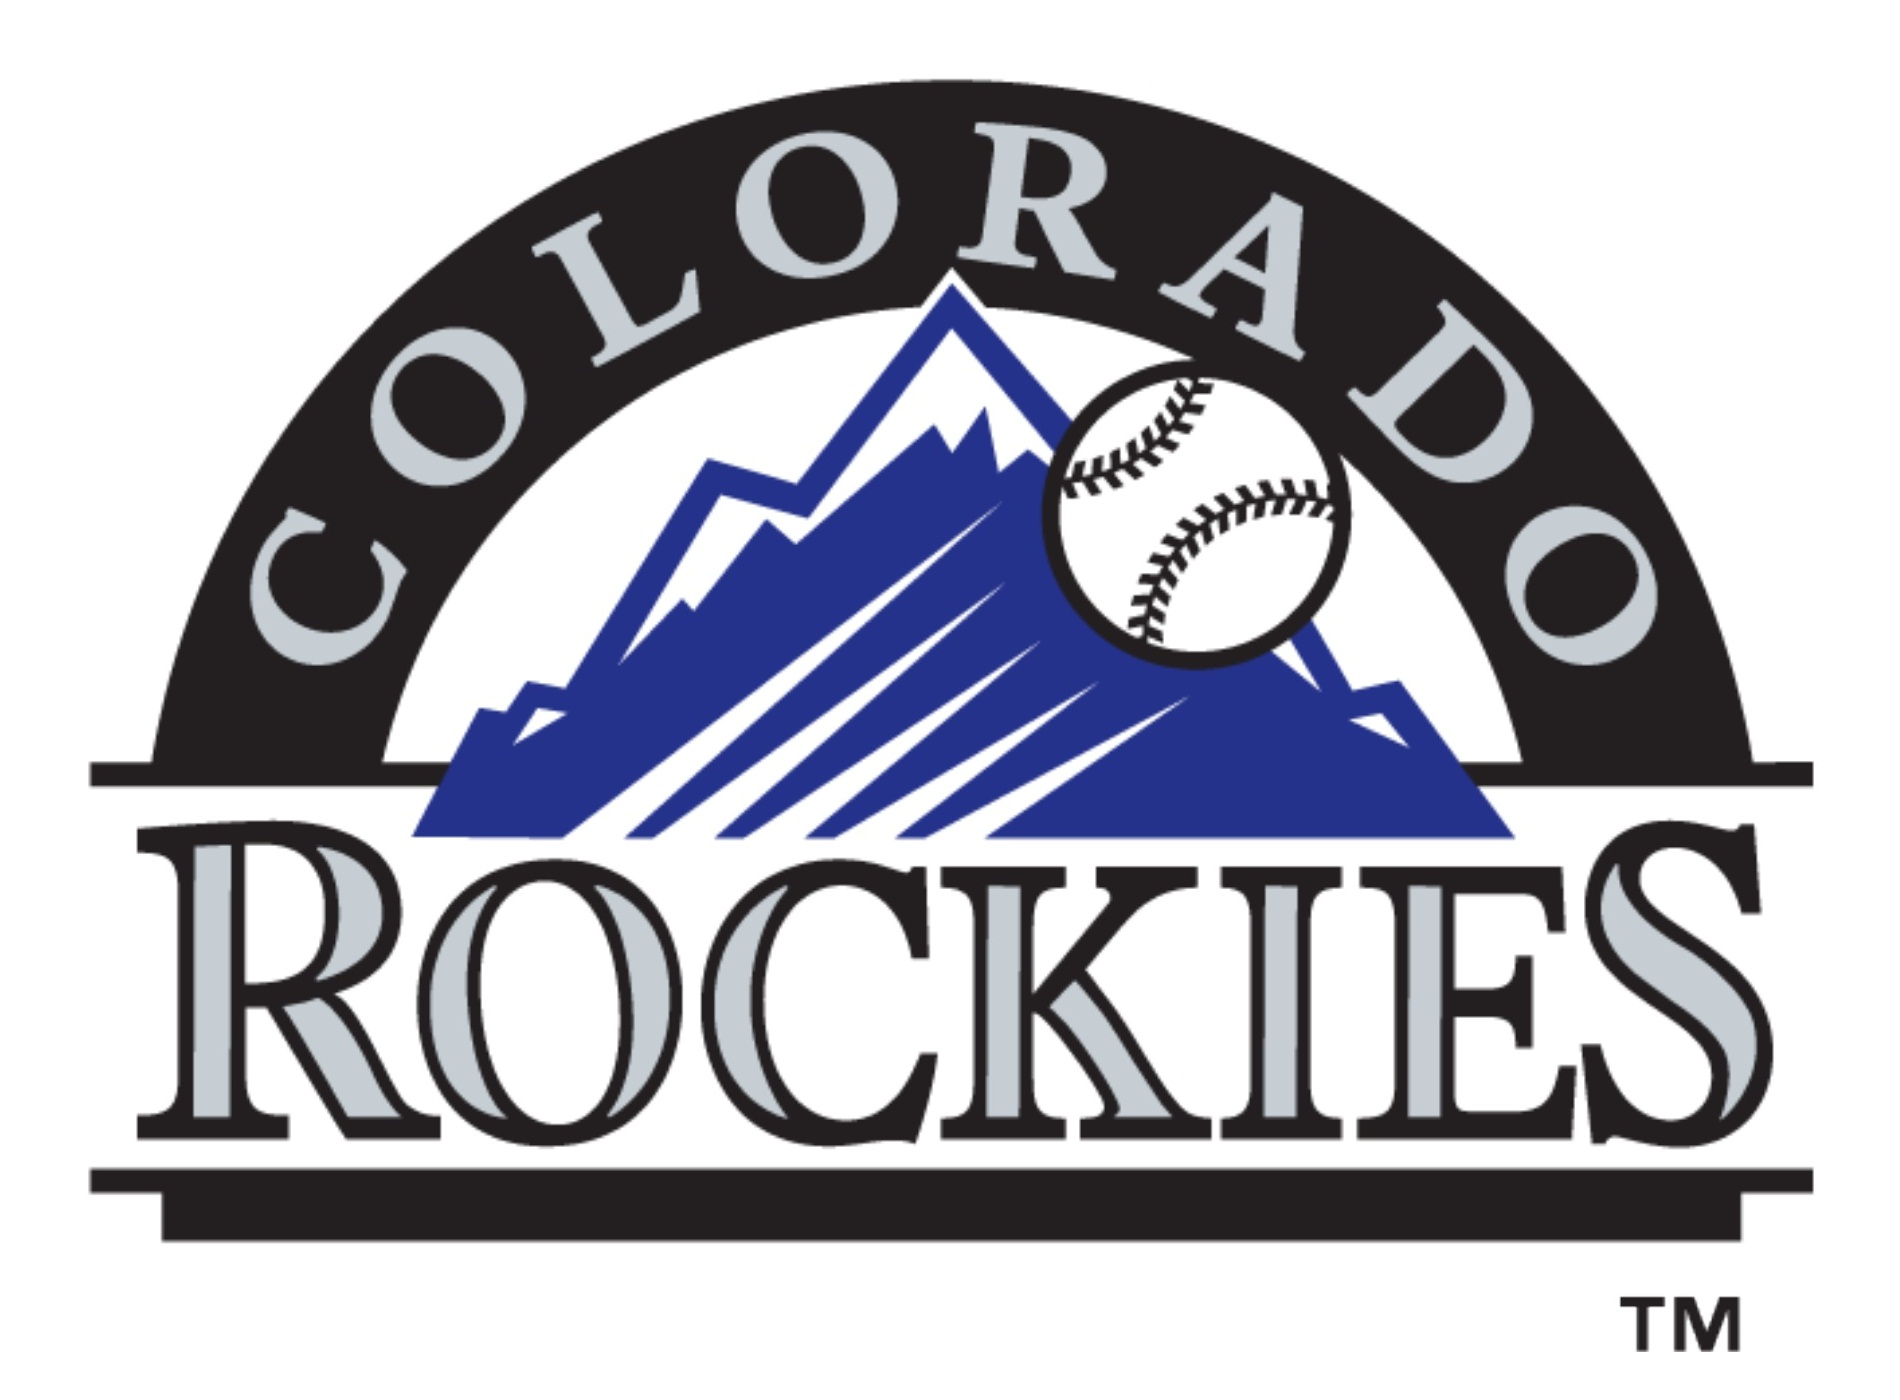 Colorado Rockies Tickets